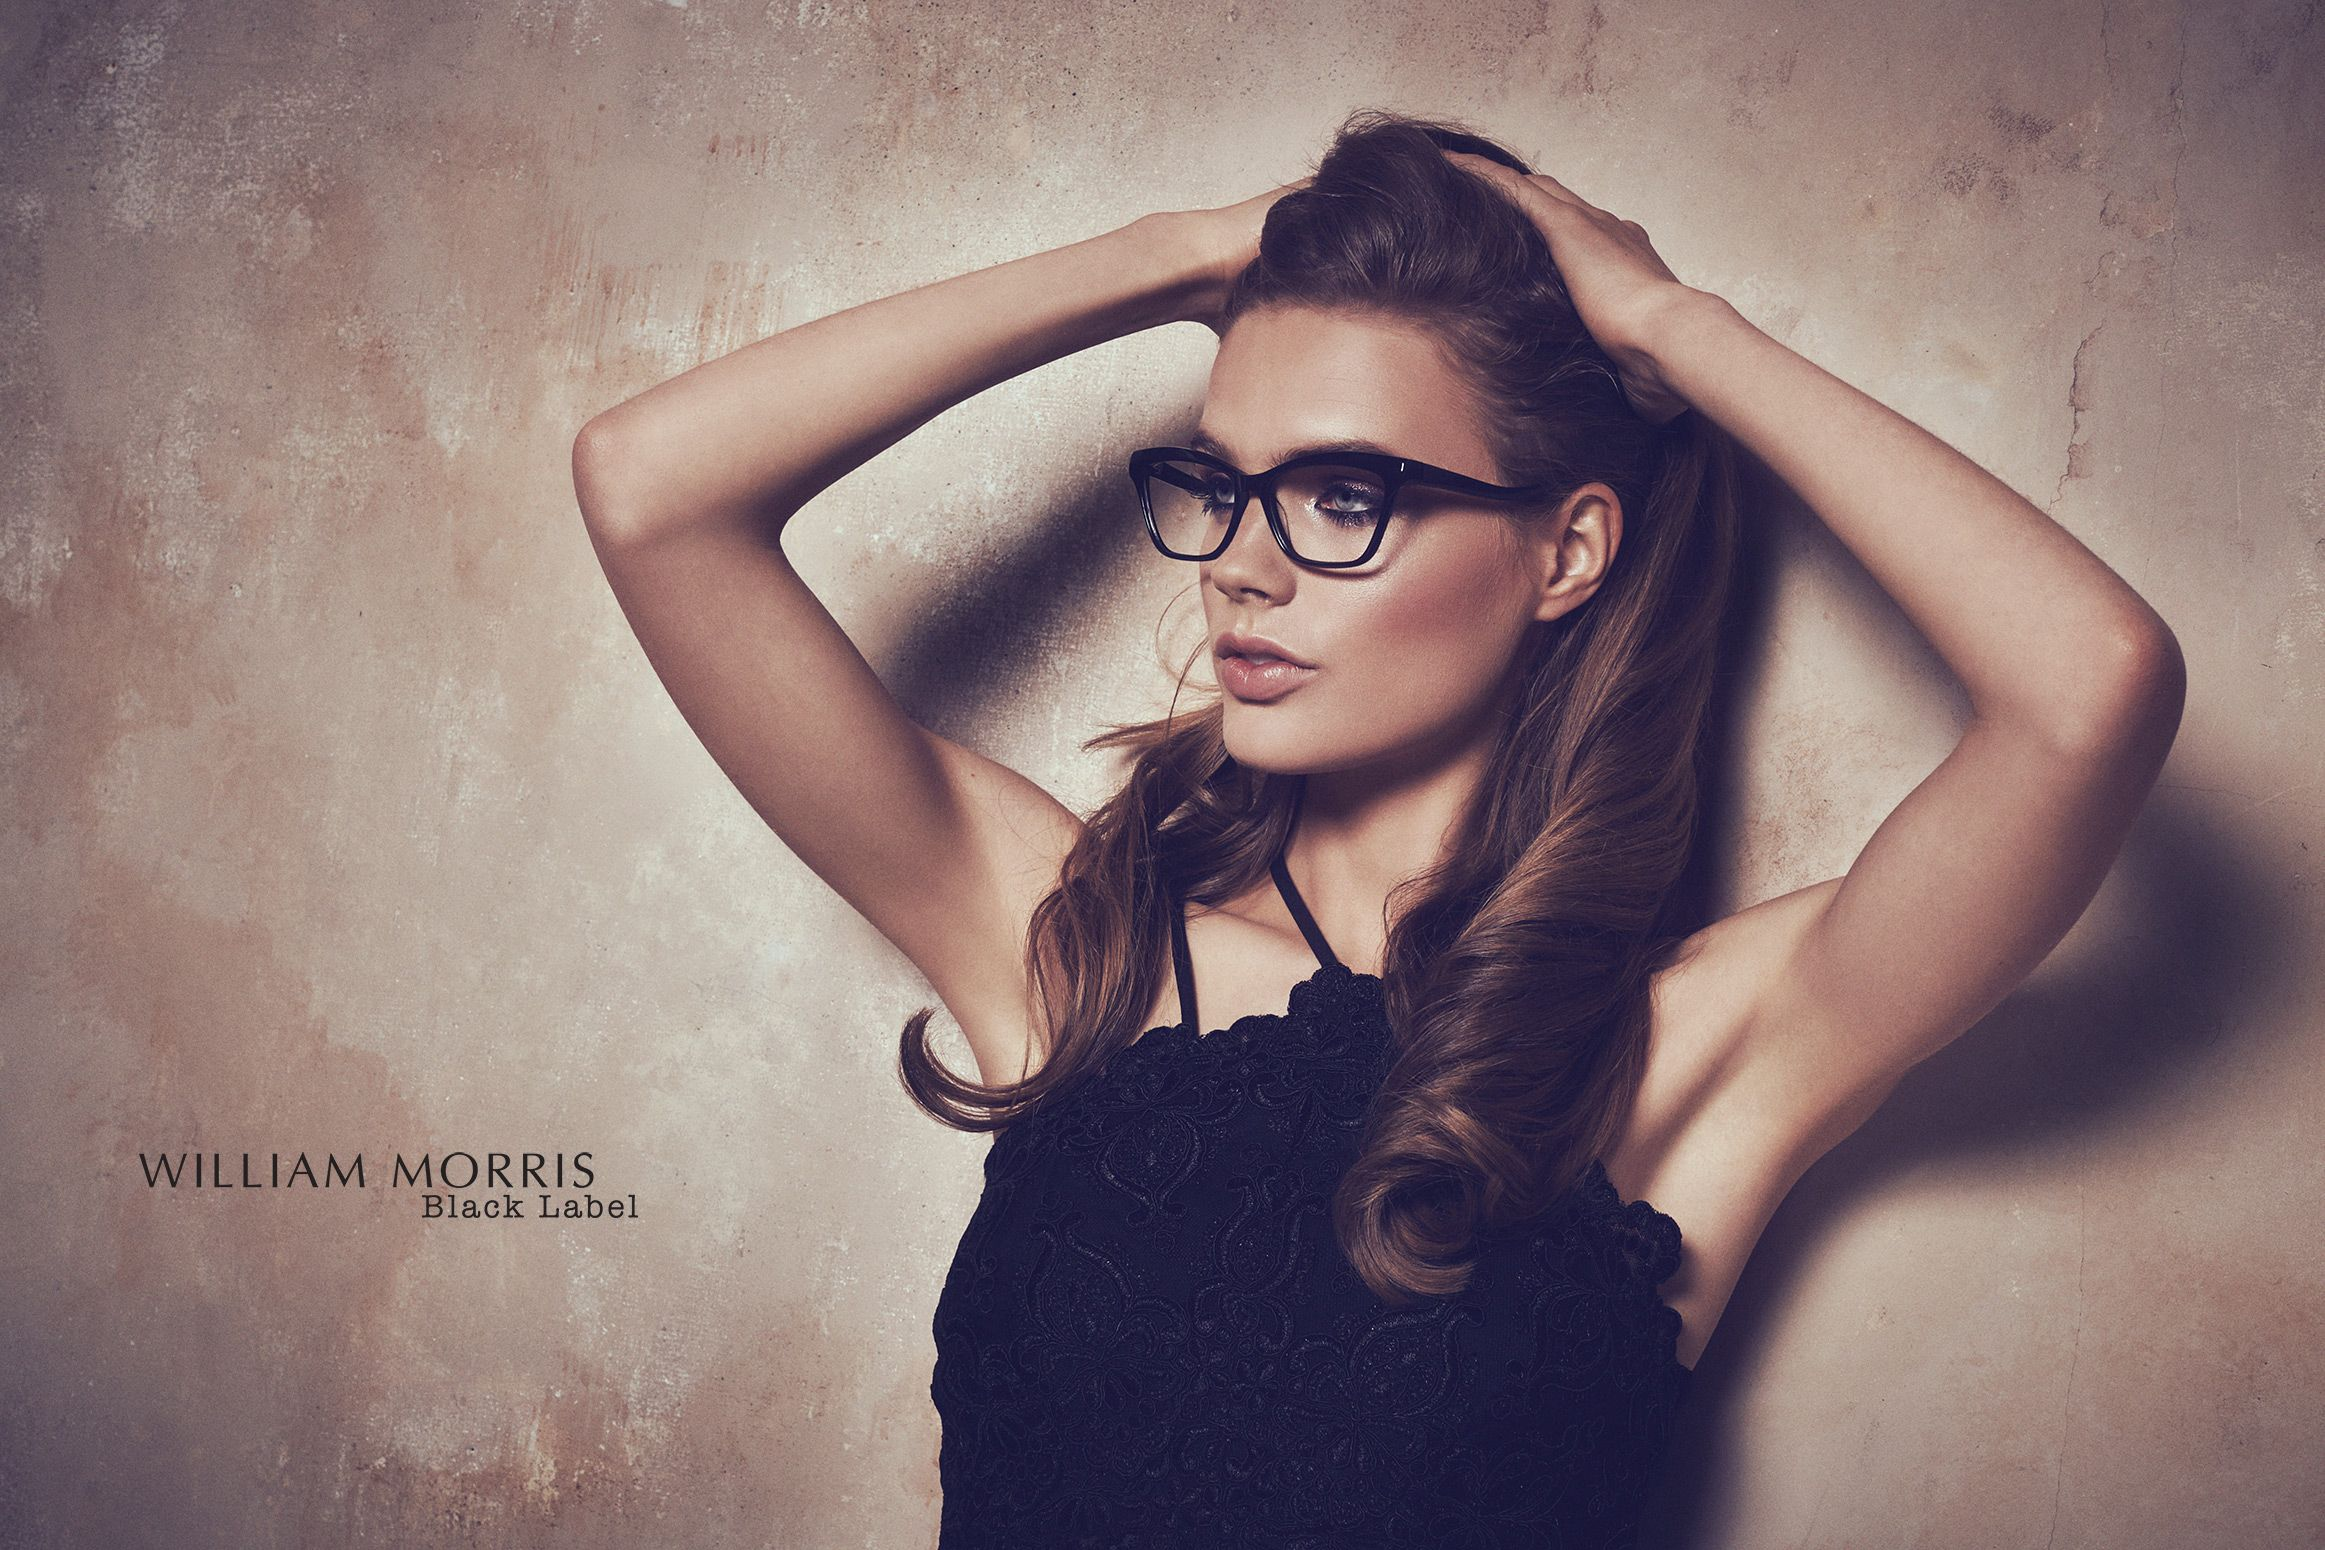 william-morris-2016-eyewear-glasses-campaign-ruth-rose-london-fashion-photographer-glynn-tyson-lois-prm-11-compressor.jpg